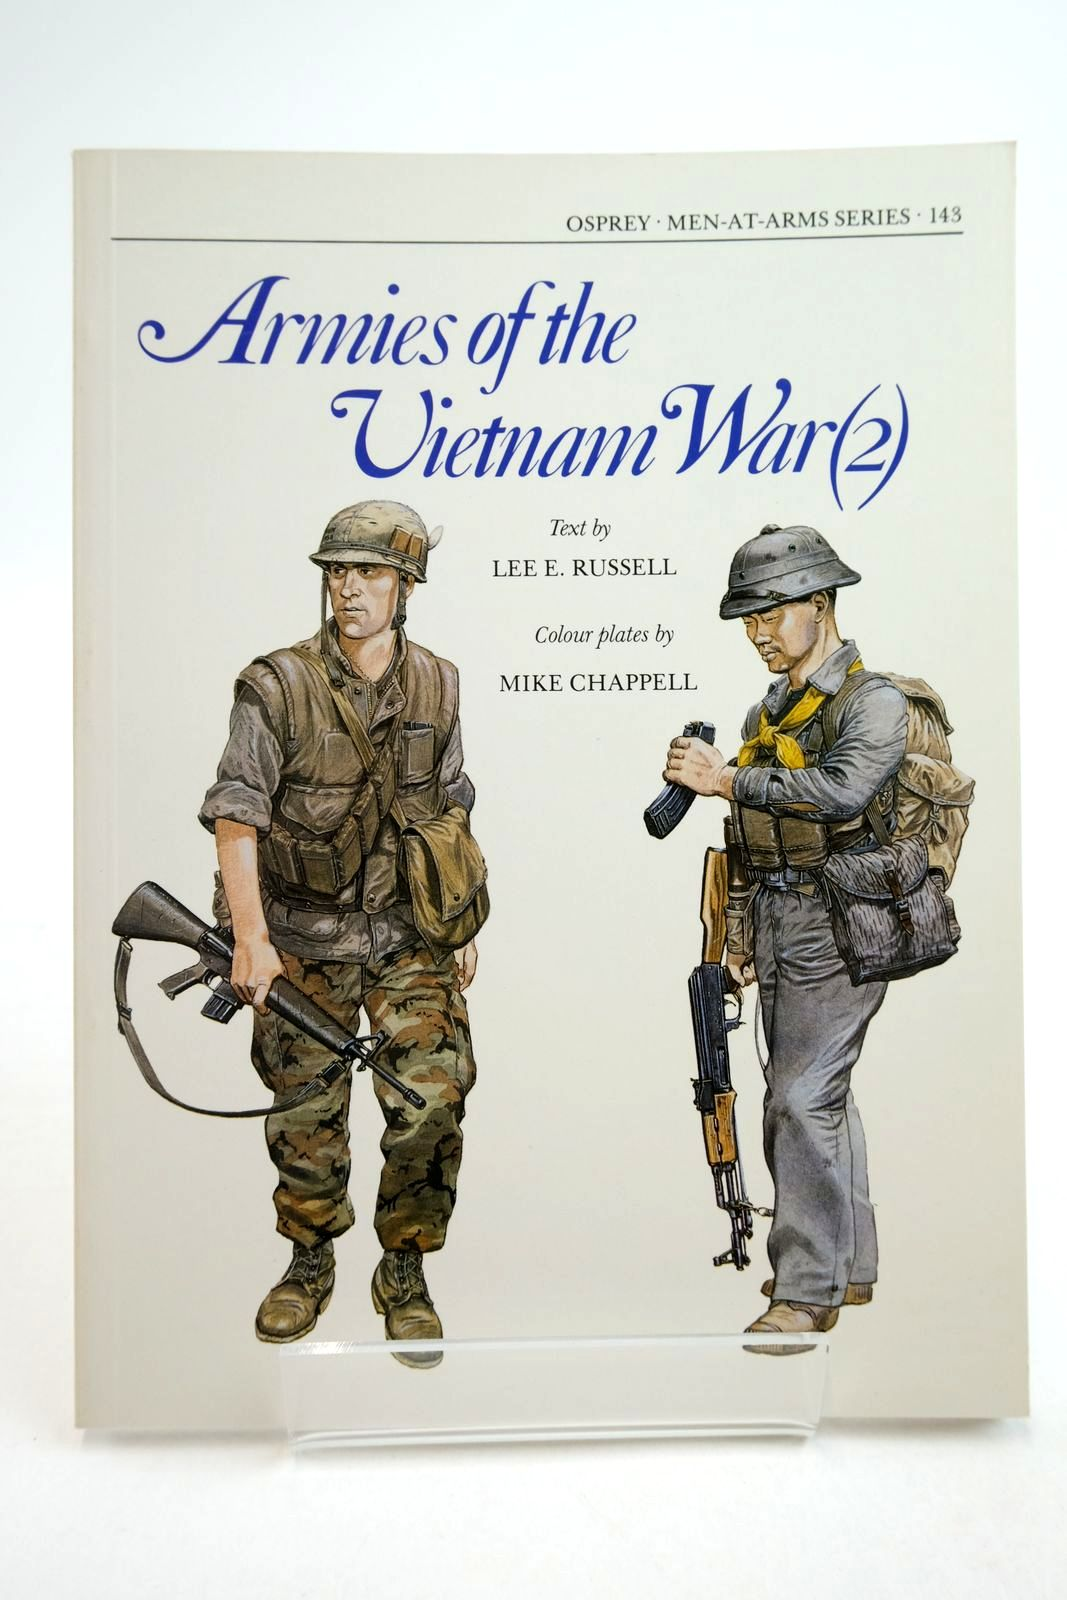 Photo of ARMIES OF THE VIETNAM WAR (2) written by Russell, Lee E. illustrated by Chappell, Mike published by Osprey Publishing (STOCK CODE: 2134743)  for sale by Stella & Rose's Books